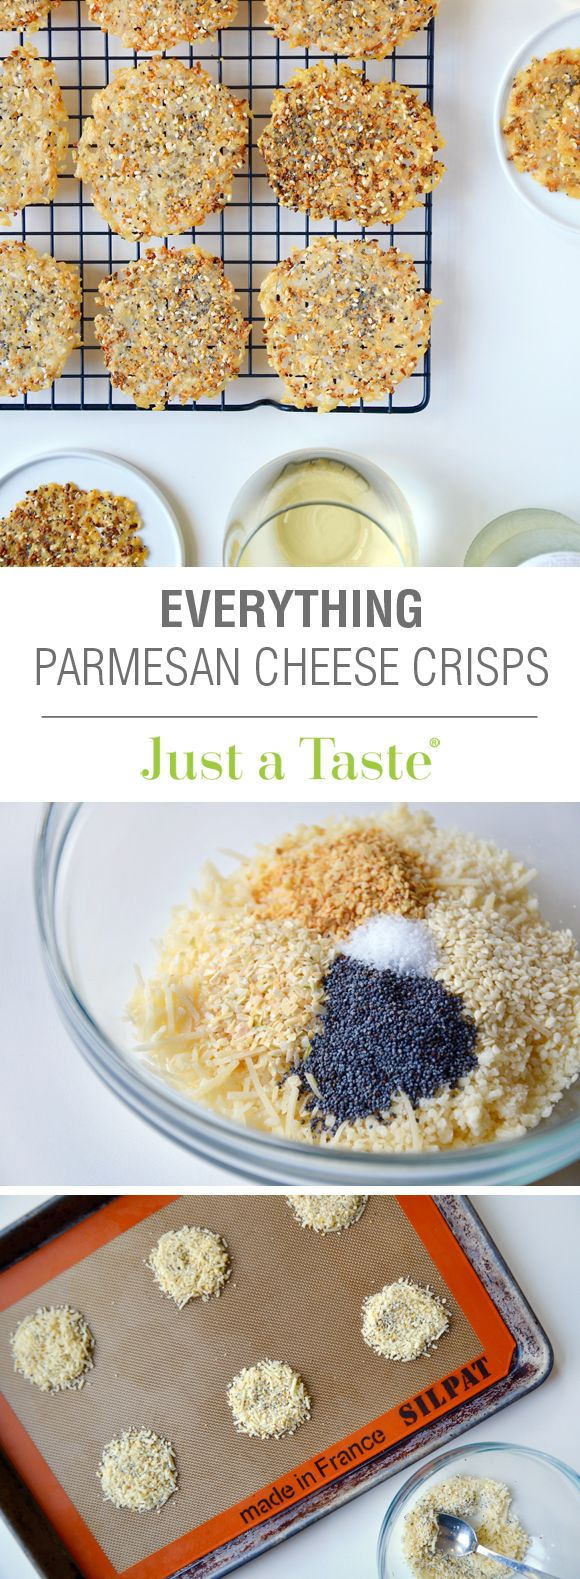 Everything Parmesan Cheese Crisps #recipe via justataste.com